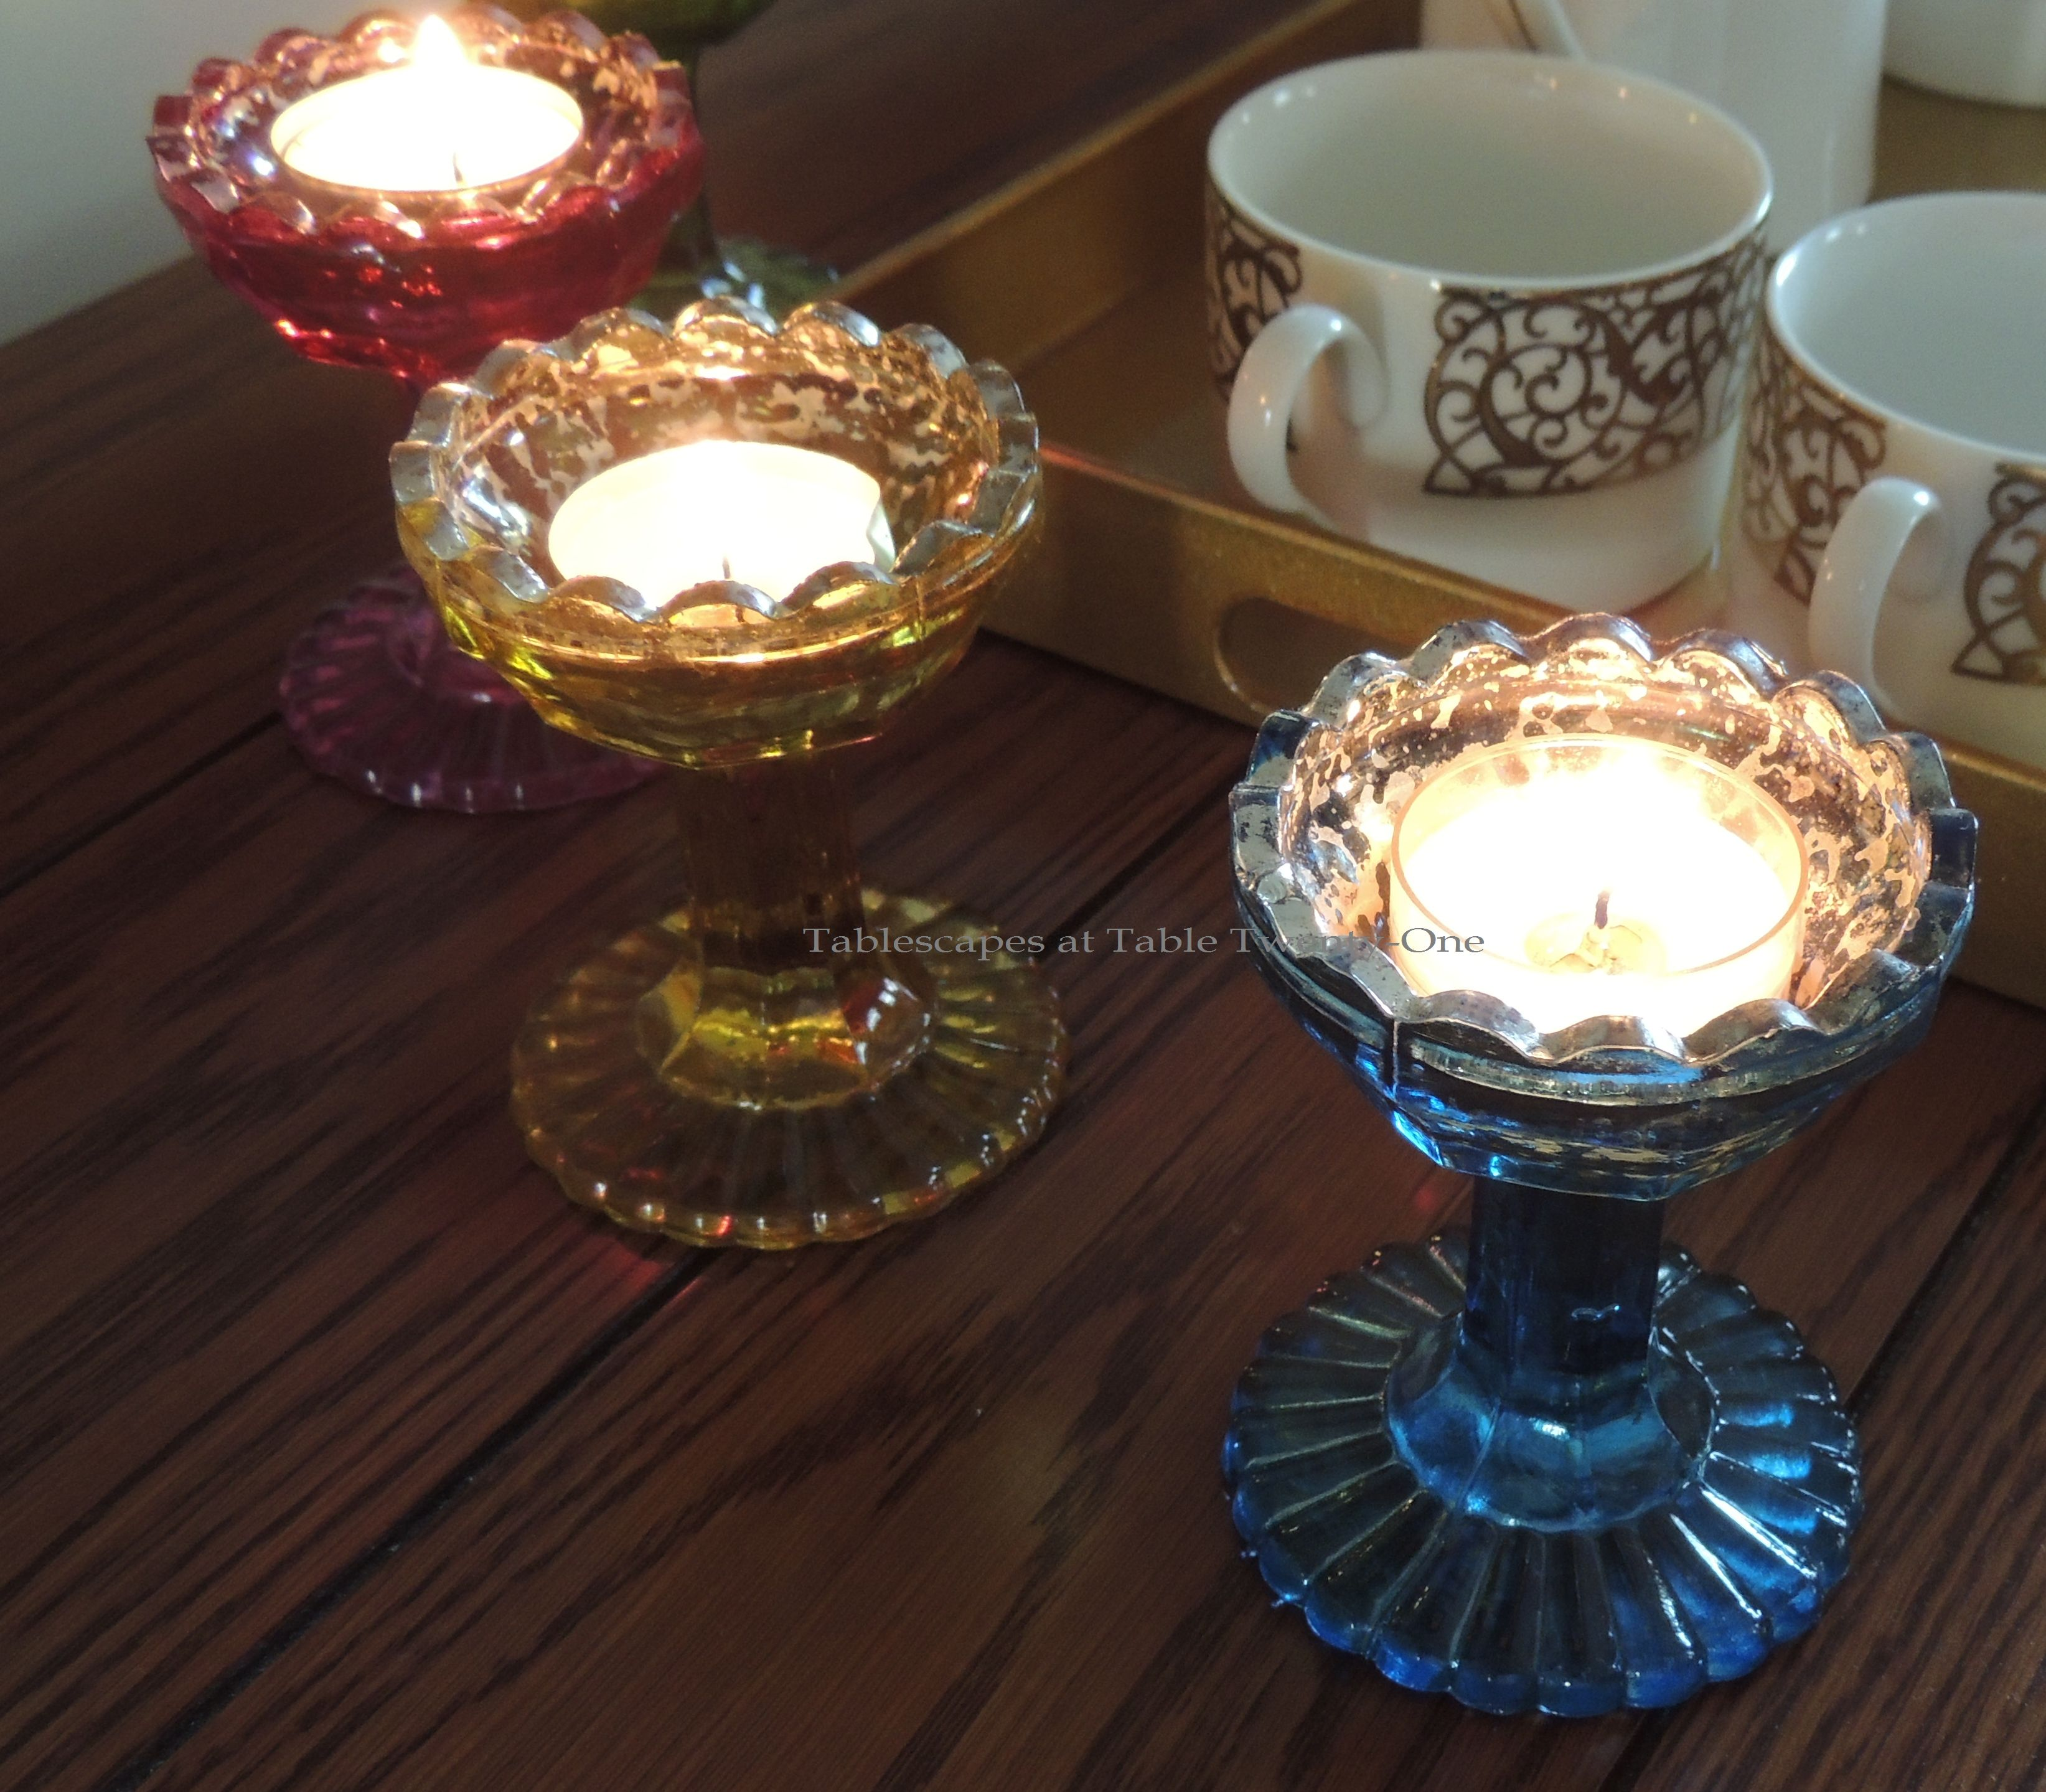 Tablescapes at Table Twenty-One, Merry & Bright Multi-Color Christmas: Colored mercury glass votive holders